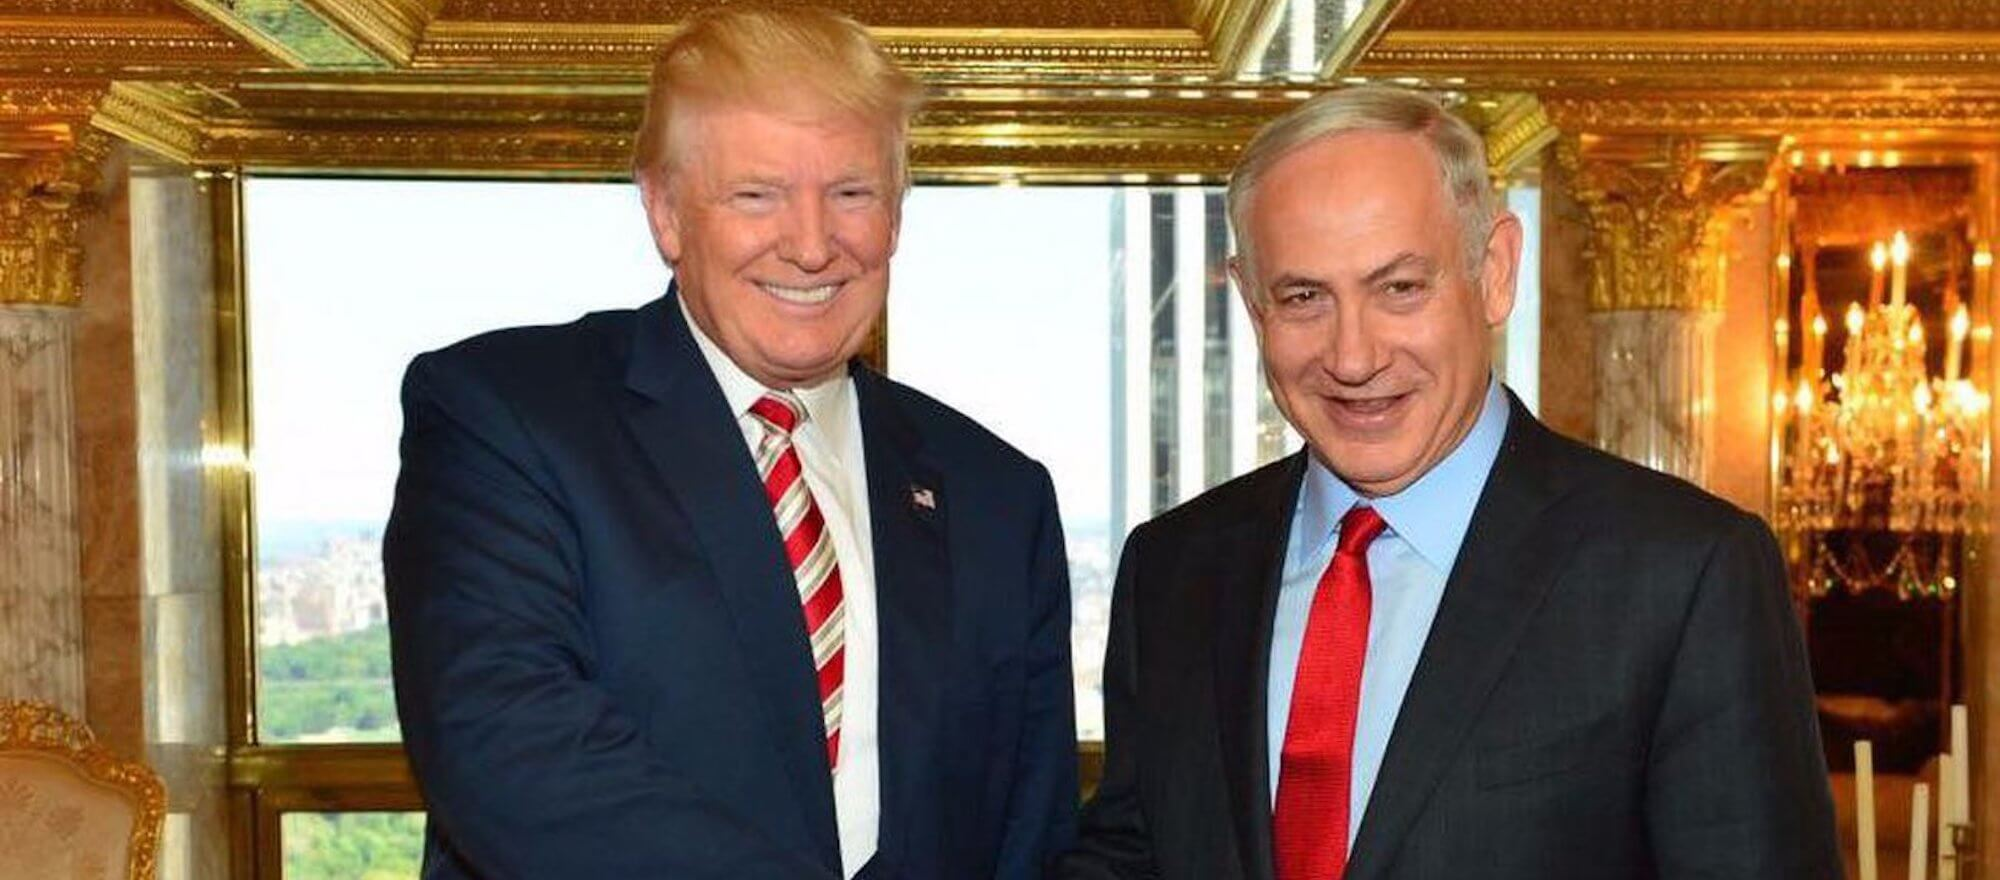 Donald Trump and Benjamin Netanyahu meeting in Trump Tower in New York in 2016.